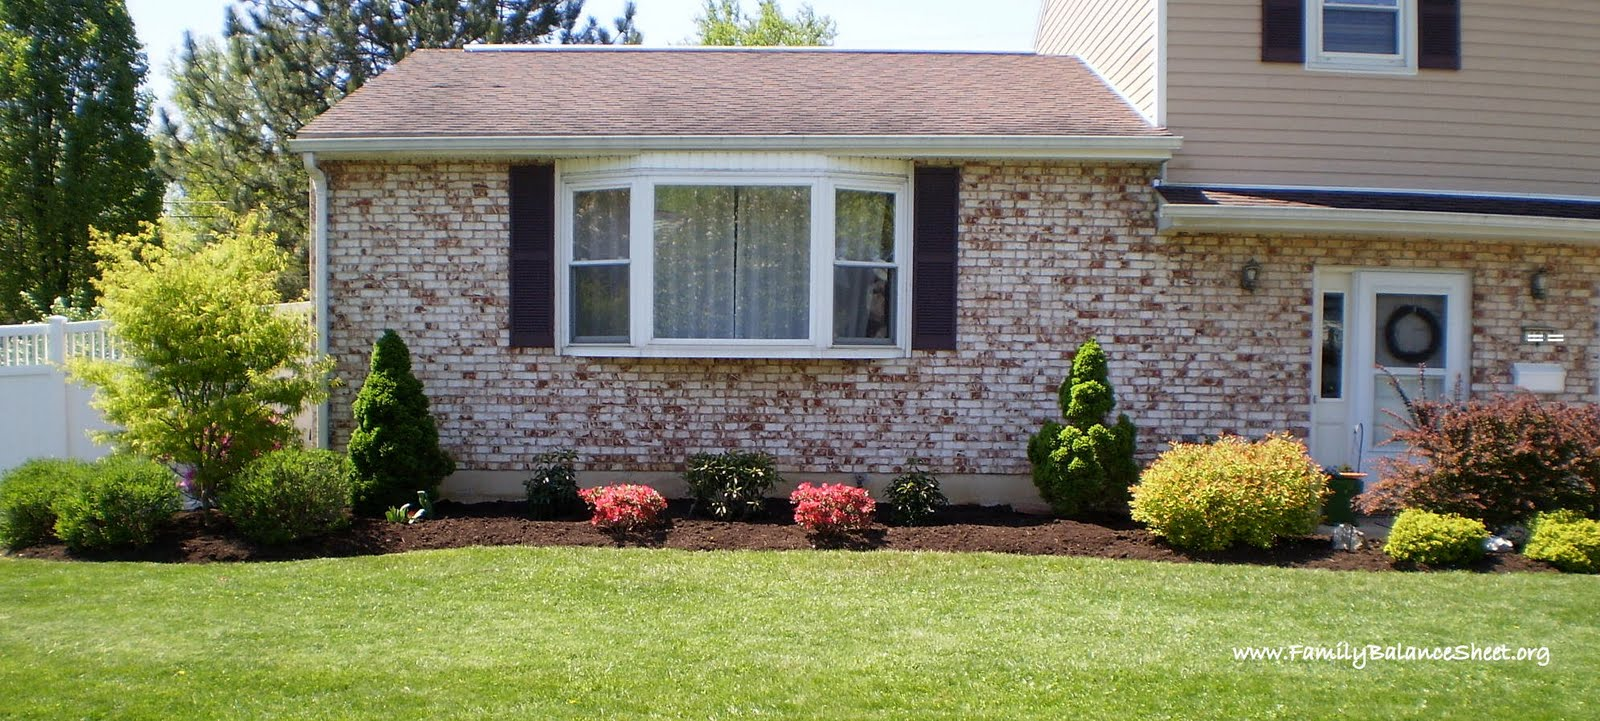 15 tips to help you design your front yard save money too for Small front yard design